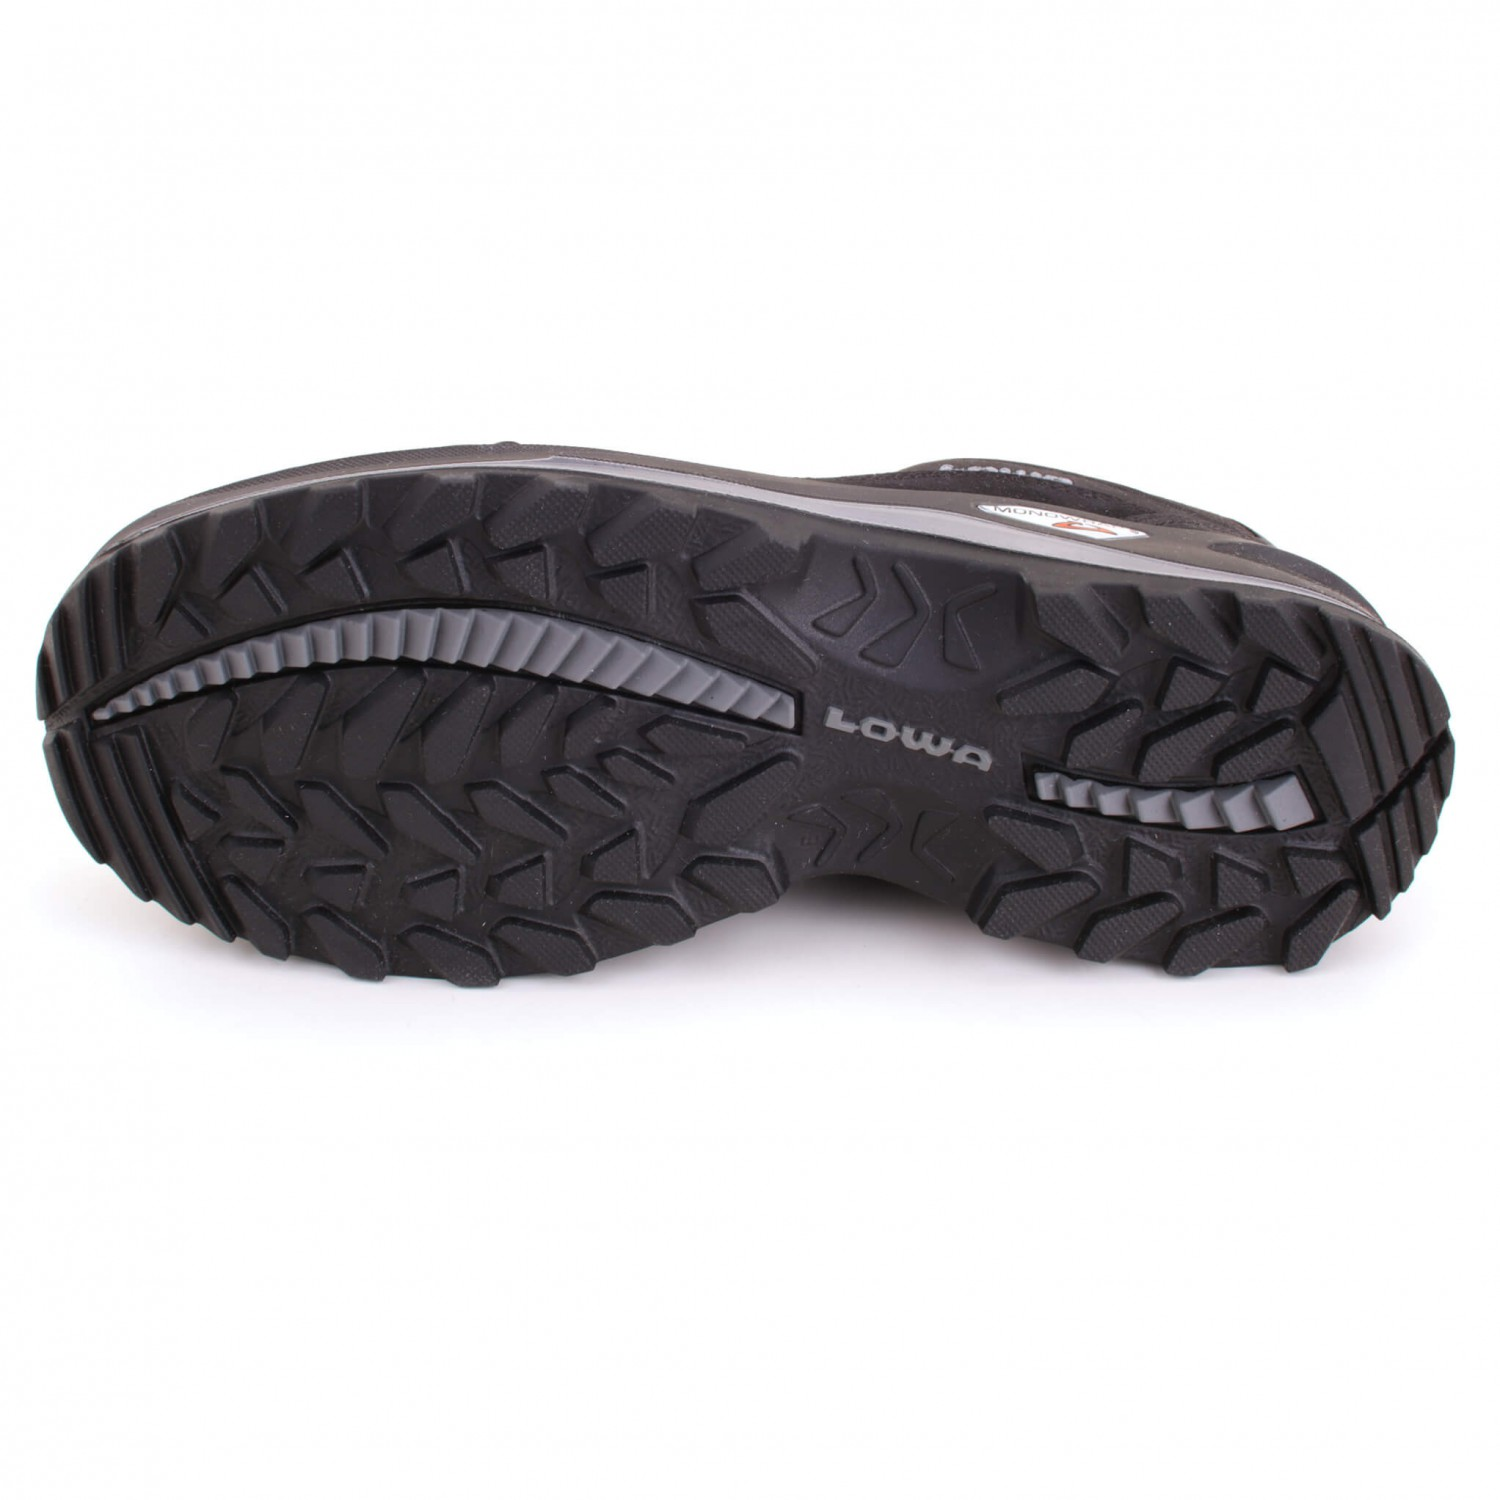 70fb633b8b4 Lowa - Renegade III GTX Lo - Multisport shoes